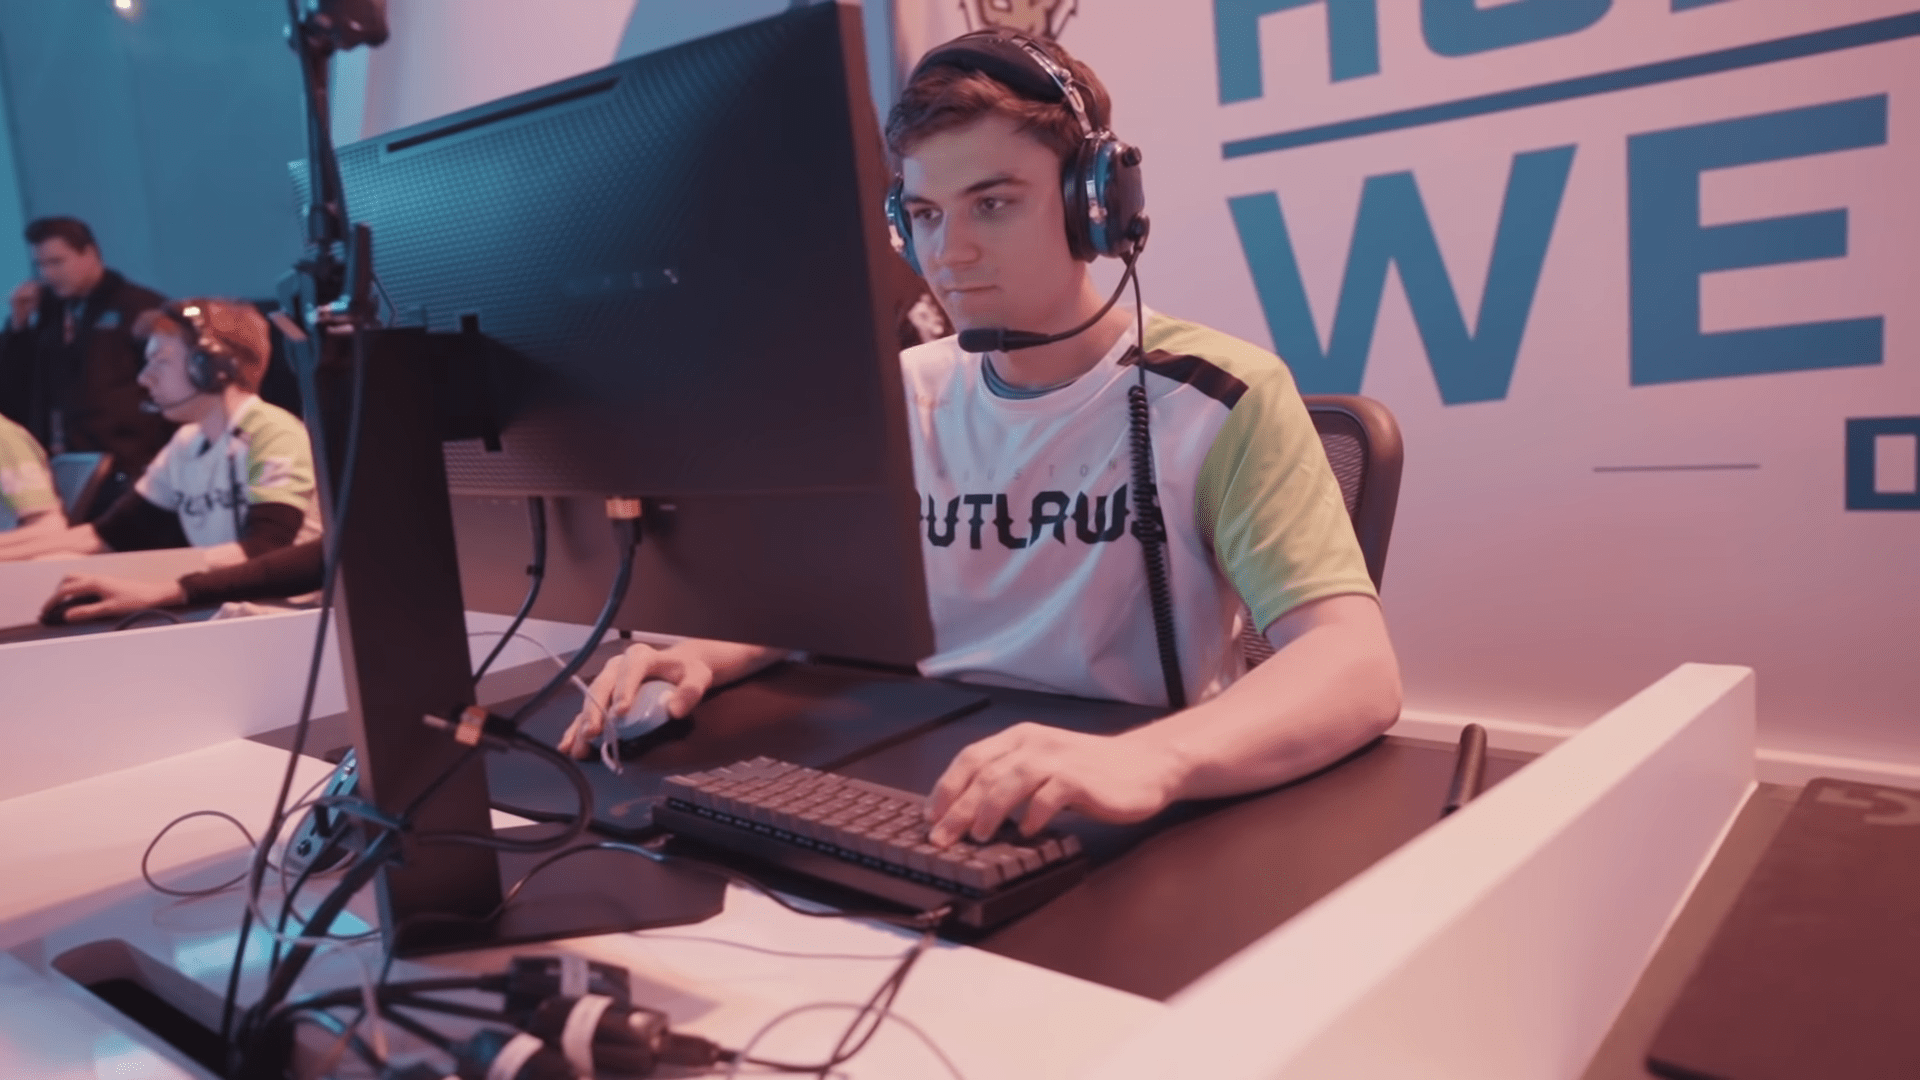 Overwatch League – Houston Outlaws Have Announced Open Try-Outs For The Public